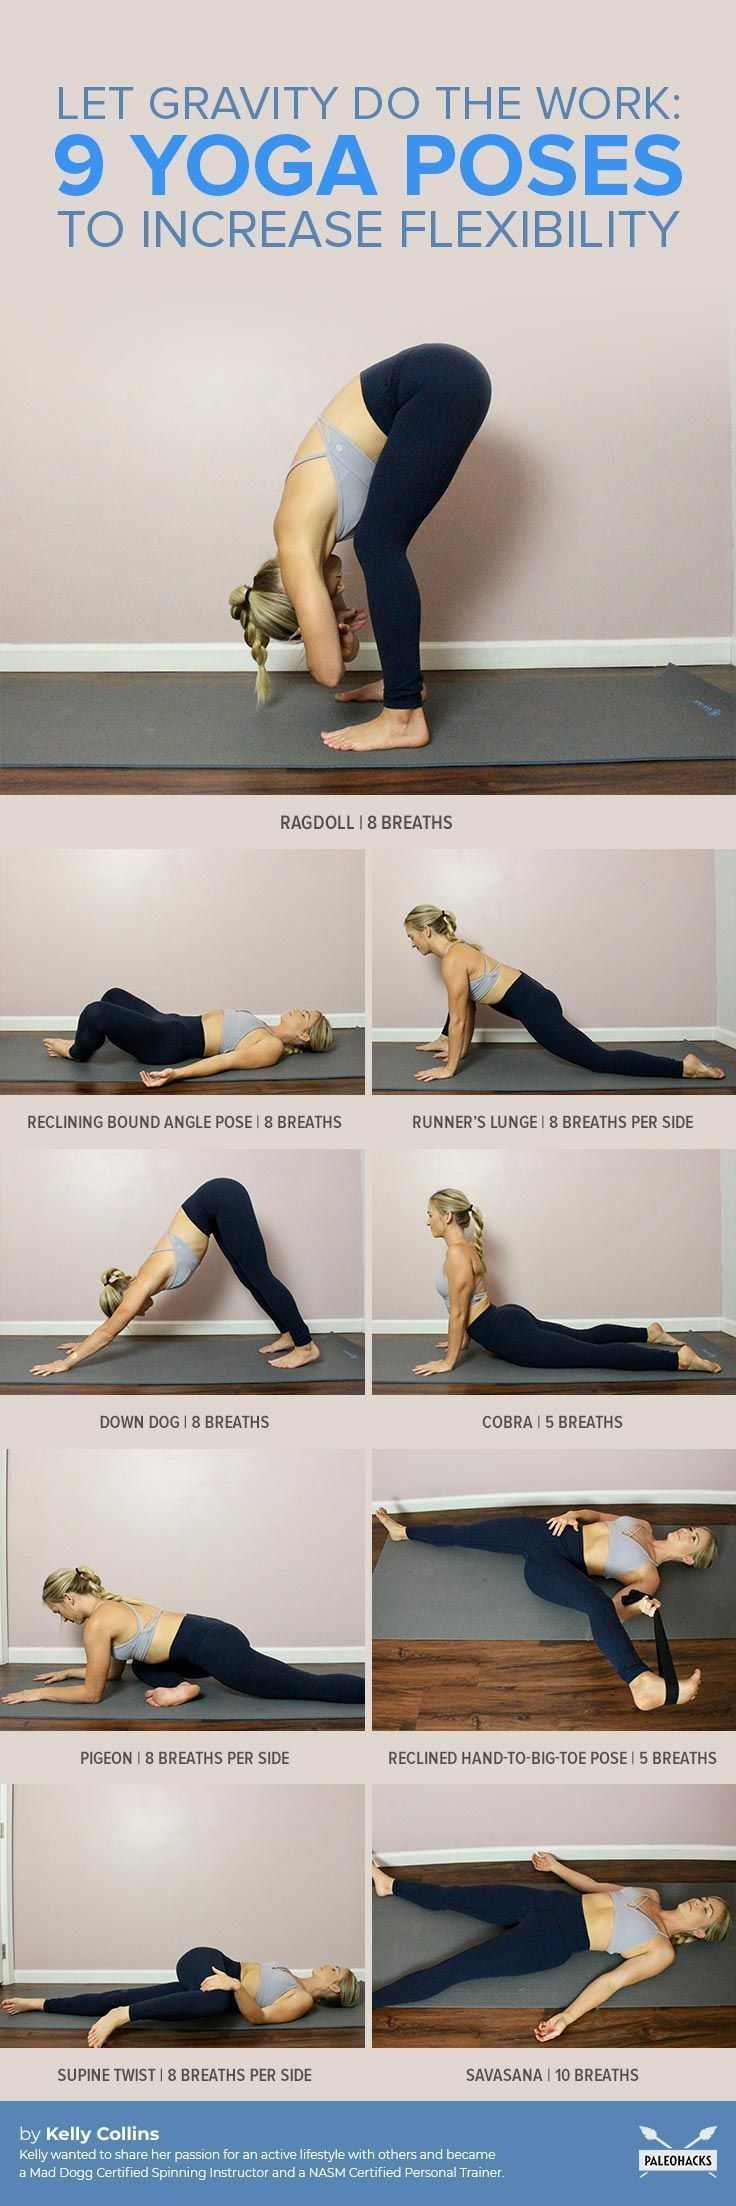 Let gravity relax your muscles with these 9 relaxing poses ... -  Let gravity relax your muscles with these 9 relaxing poses – health-diet – #the #this #Relax #r - #gravity #muscles #Poses #Relax #relaxing #Yogachallenge #Yogaforflexibility #Yogaforweightloss #Yogainspiration #Yogalifestyle #Yogaphotography #Yogaposes #Yogaprincipiantes #Yogaquotes